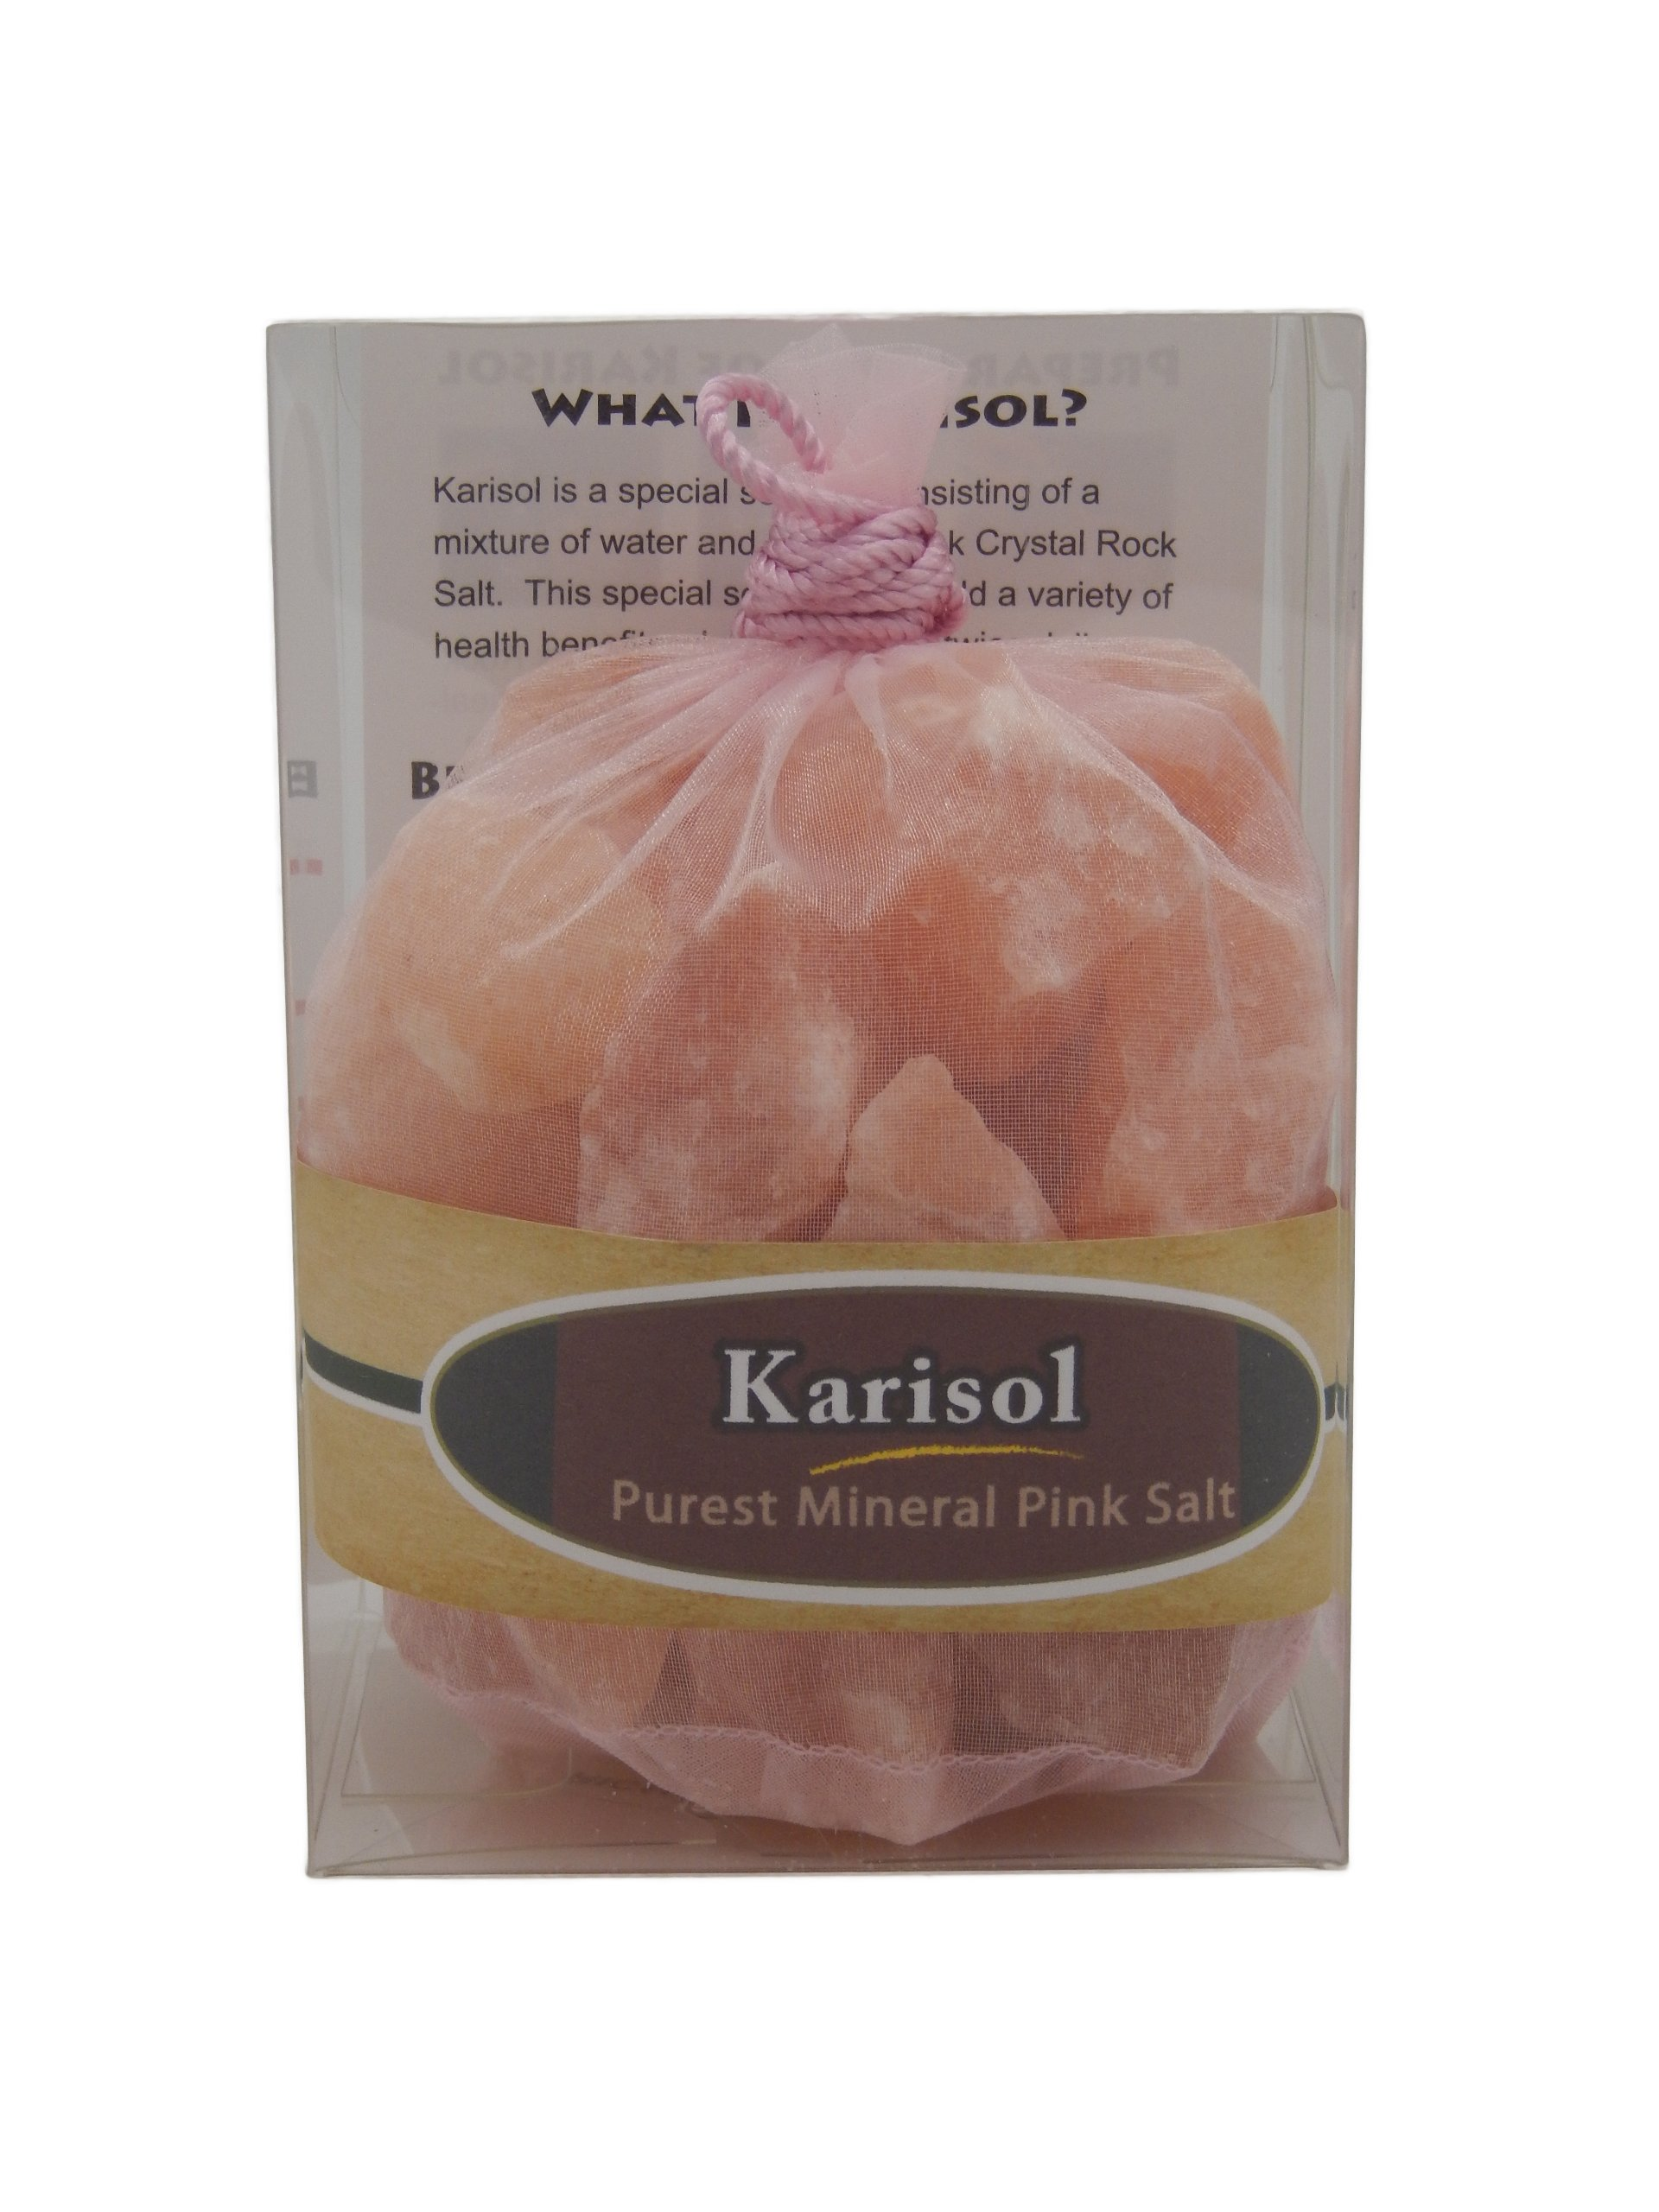 Kmr-454 Karisol 1 Lbs is for Purified Mineral Water. Pink Rock Salt for Alkalizing, Balacing, Ditoxification and Gargling